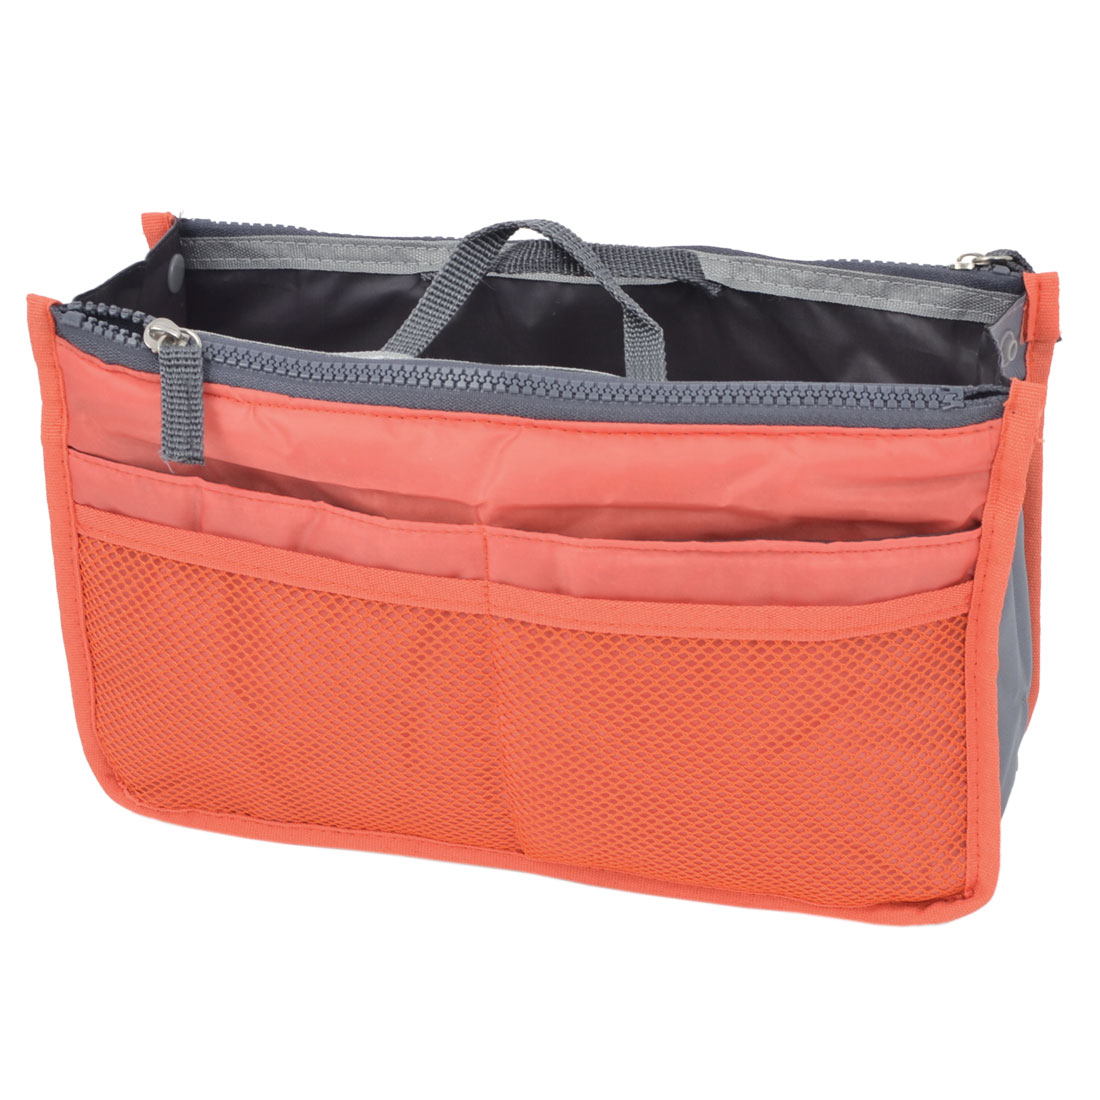 Rectangle Meshy Design Zipper Closure Handbag Storage Bag Holder Orange Red